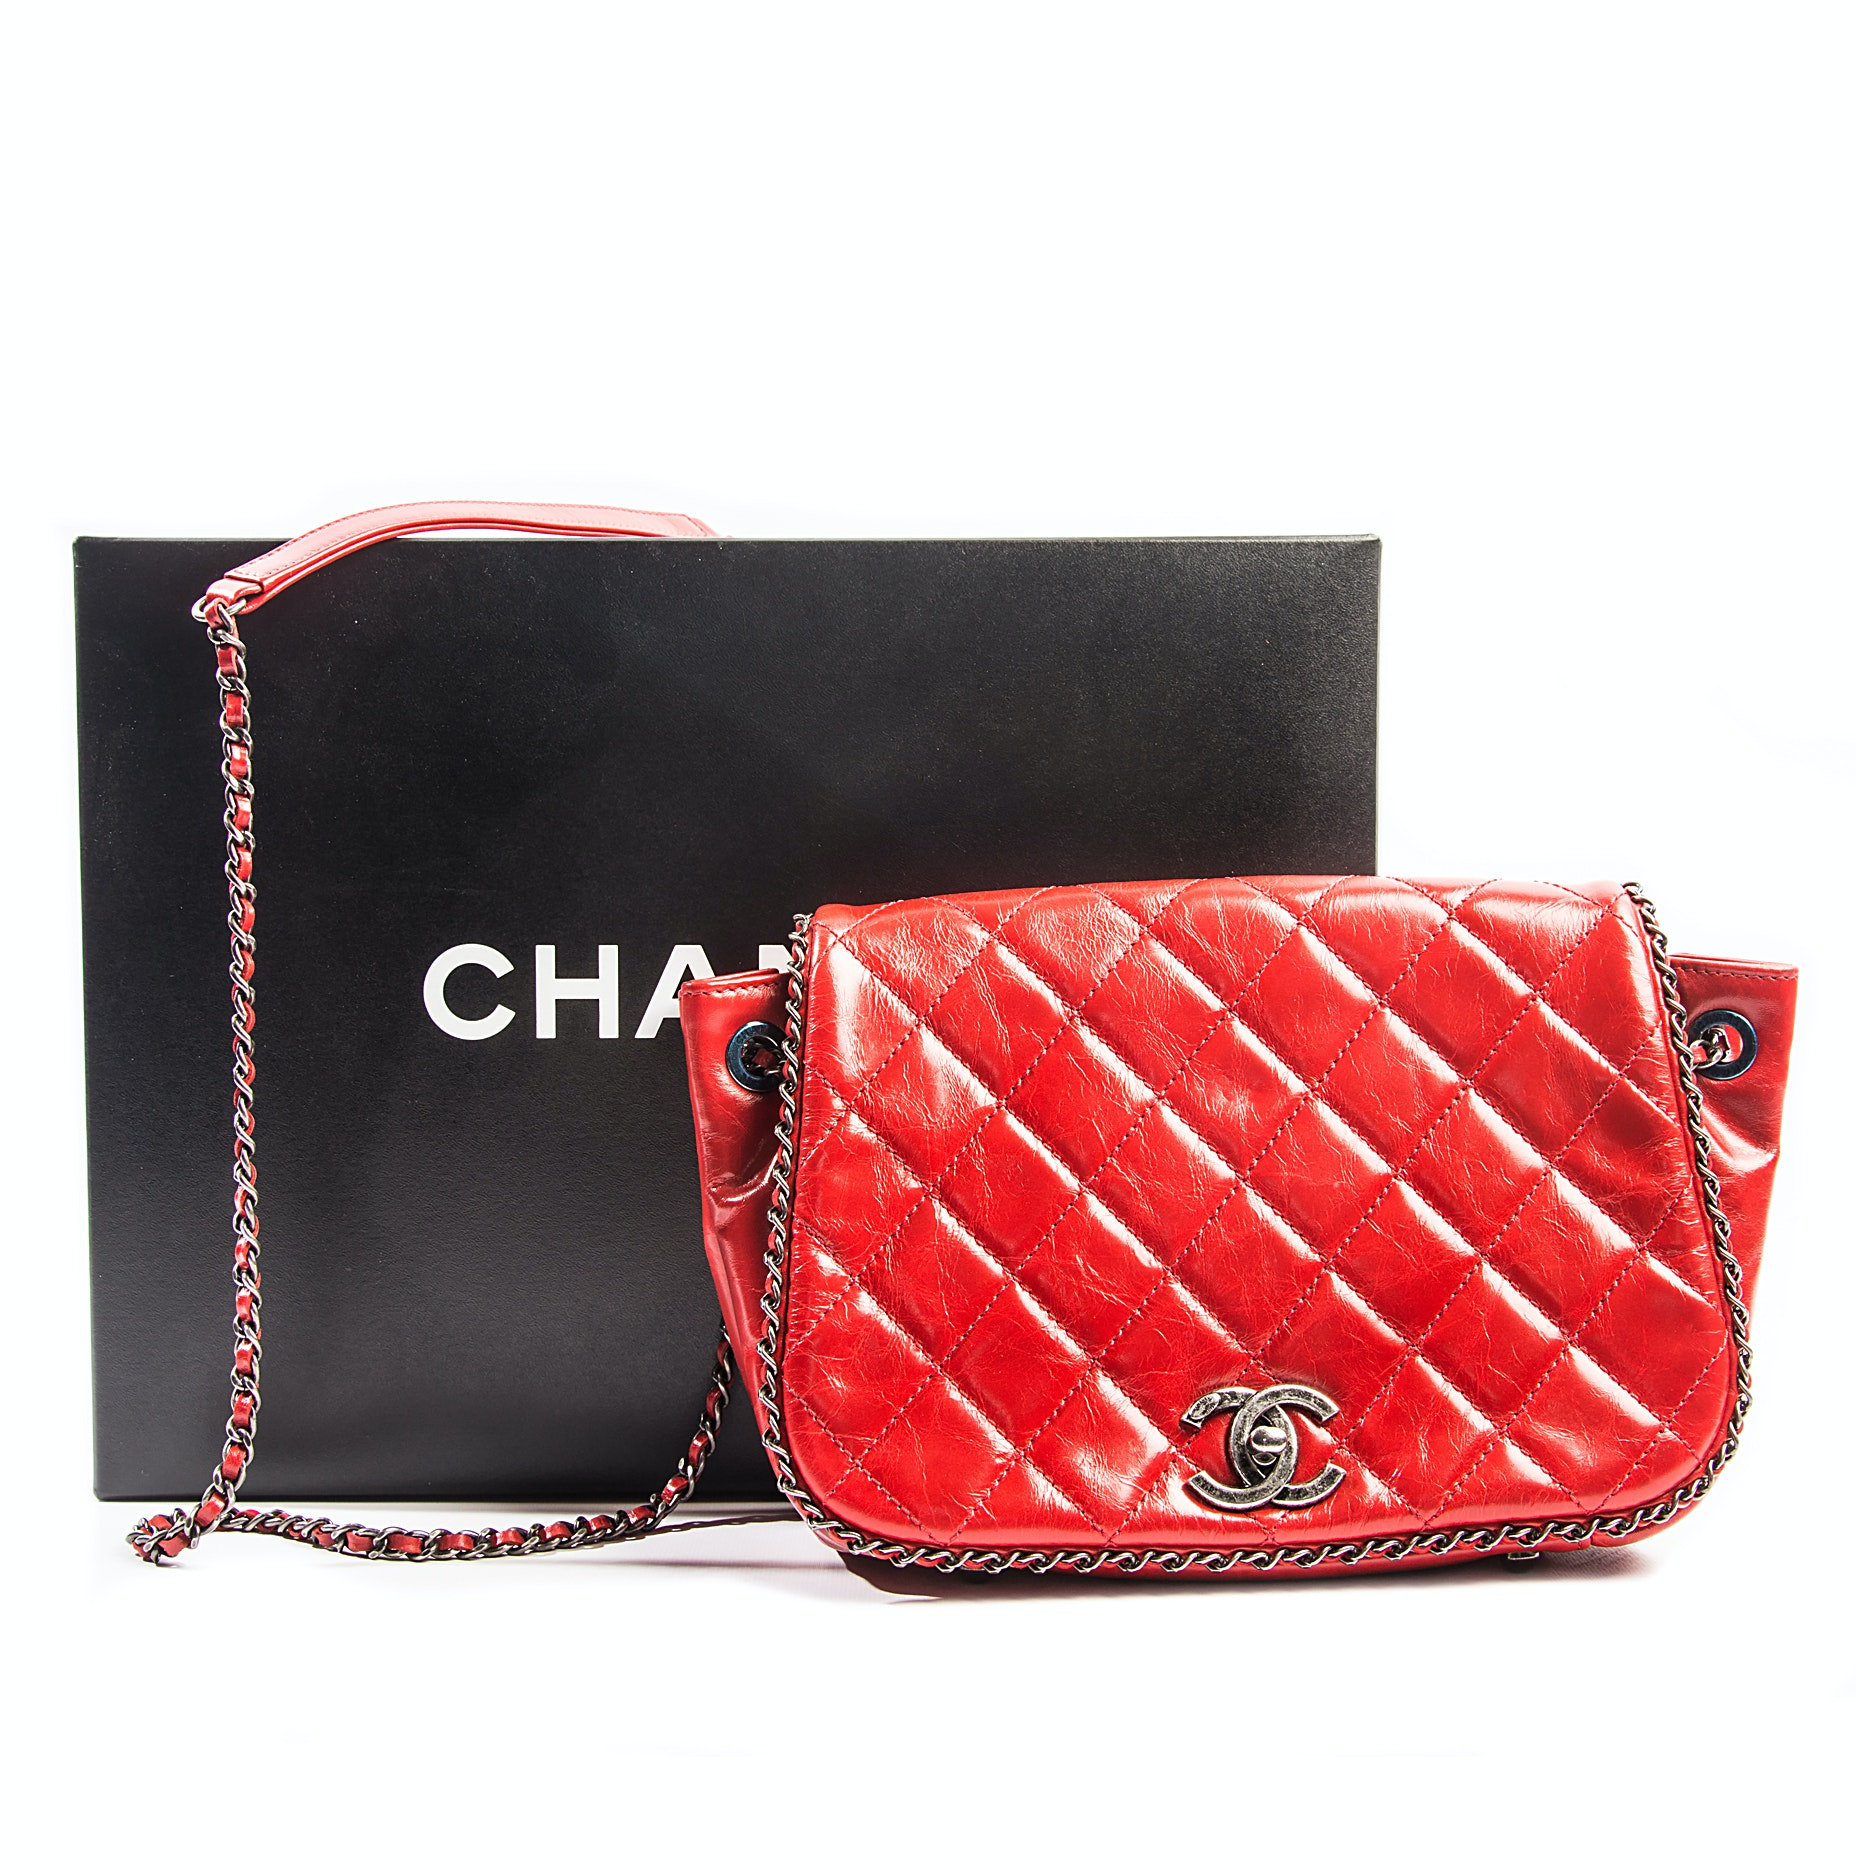 Chanel Red Quilted Accordian Crossbody Bag